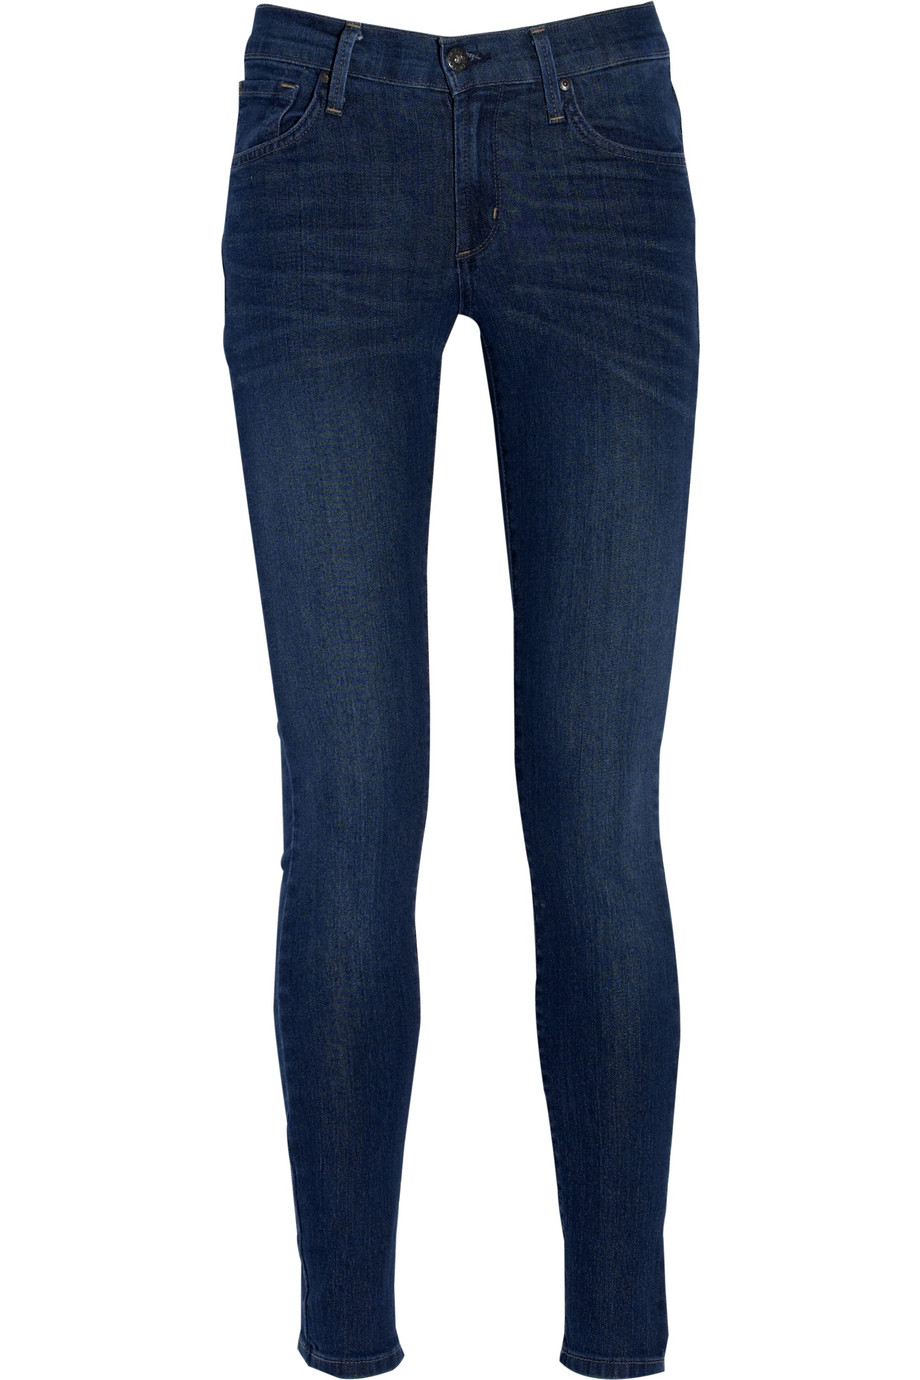 Free shipping and returns on skinny jeans for women at metools.ml Shop for skinny jeans by wash, rise, waist size, and more from brands like Articles of Society, Topshop, AG, Madewell, and more. Free shipping and returns.